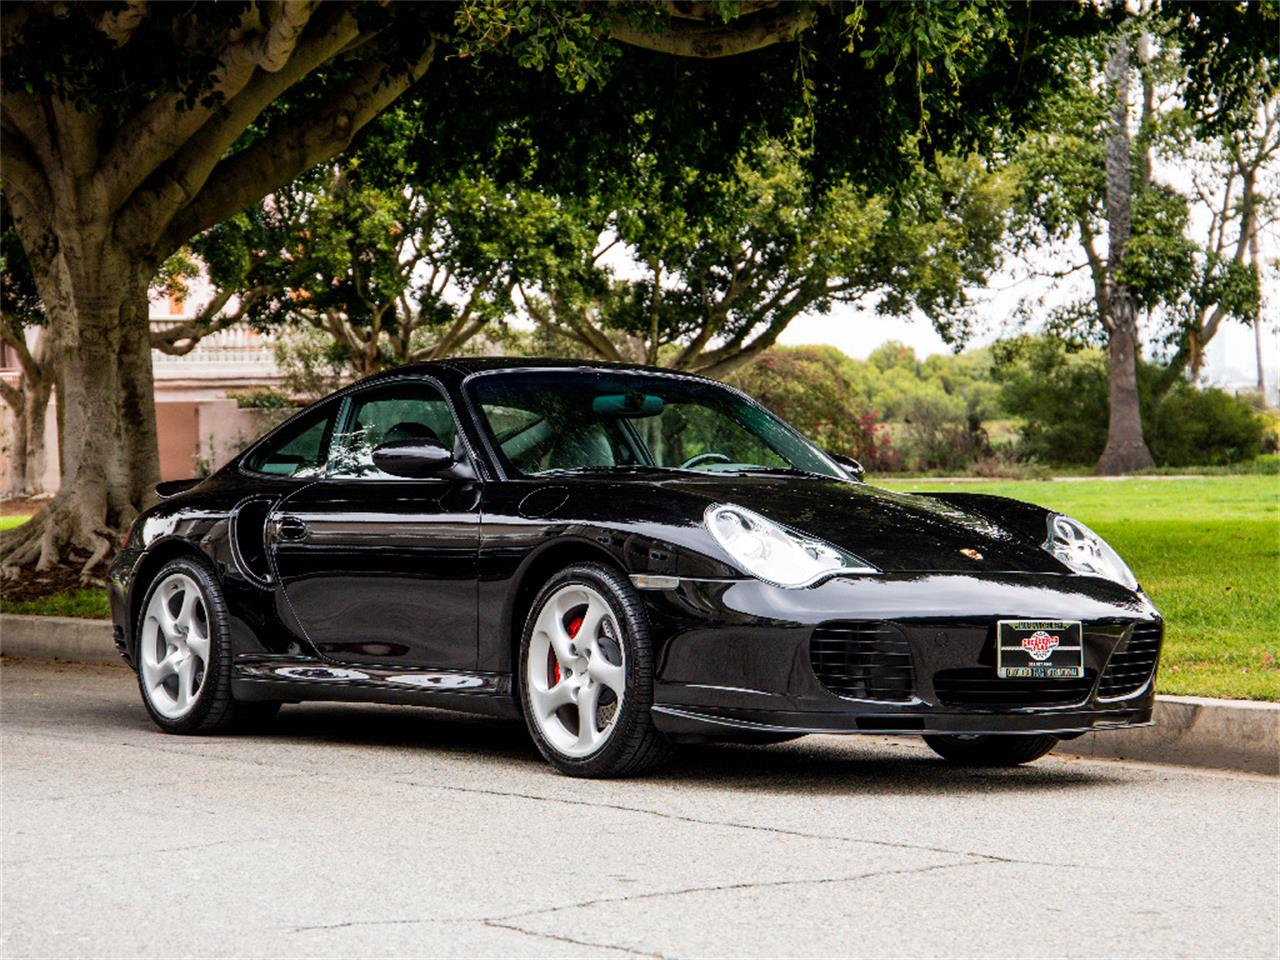 Large Picture of 2002 Porsche 911 Turbo located in Marina Del Rey California Offered by Chequered Flag International - NVVR